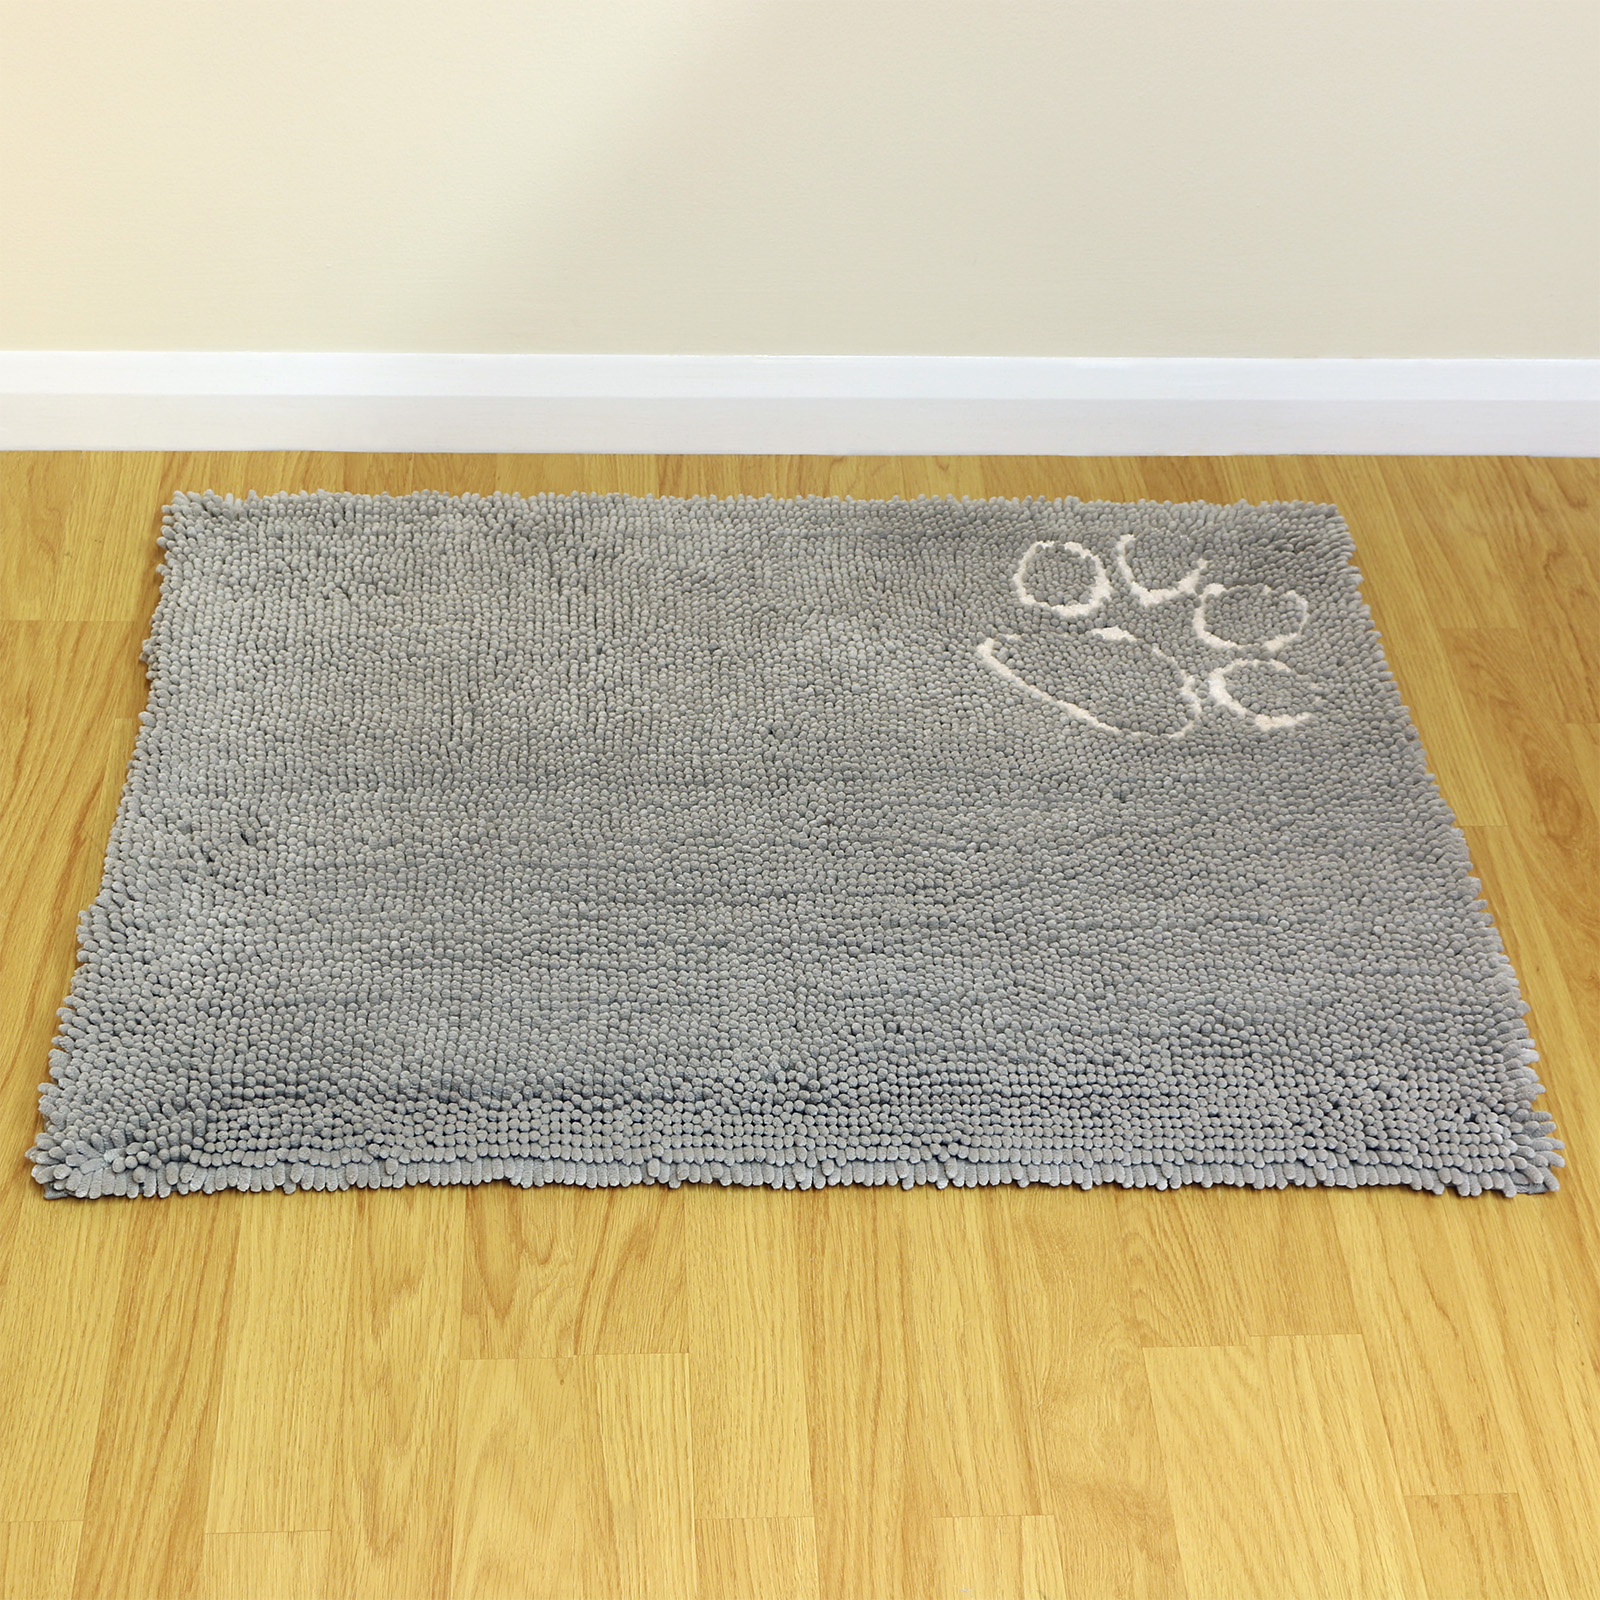 room home rugs polyester kitchen living on bedroom item slip pcs durable carpet in garden anti puppy floor doormat bathroom floors modern mat dog from